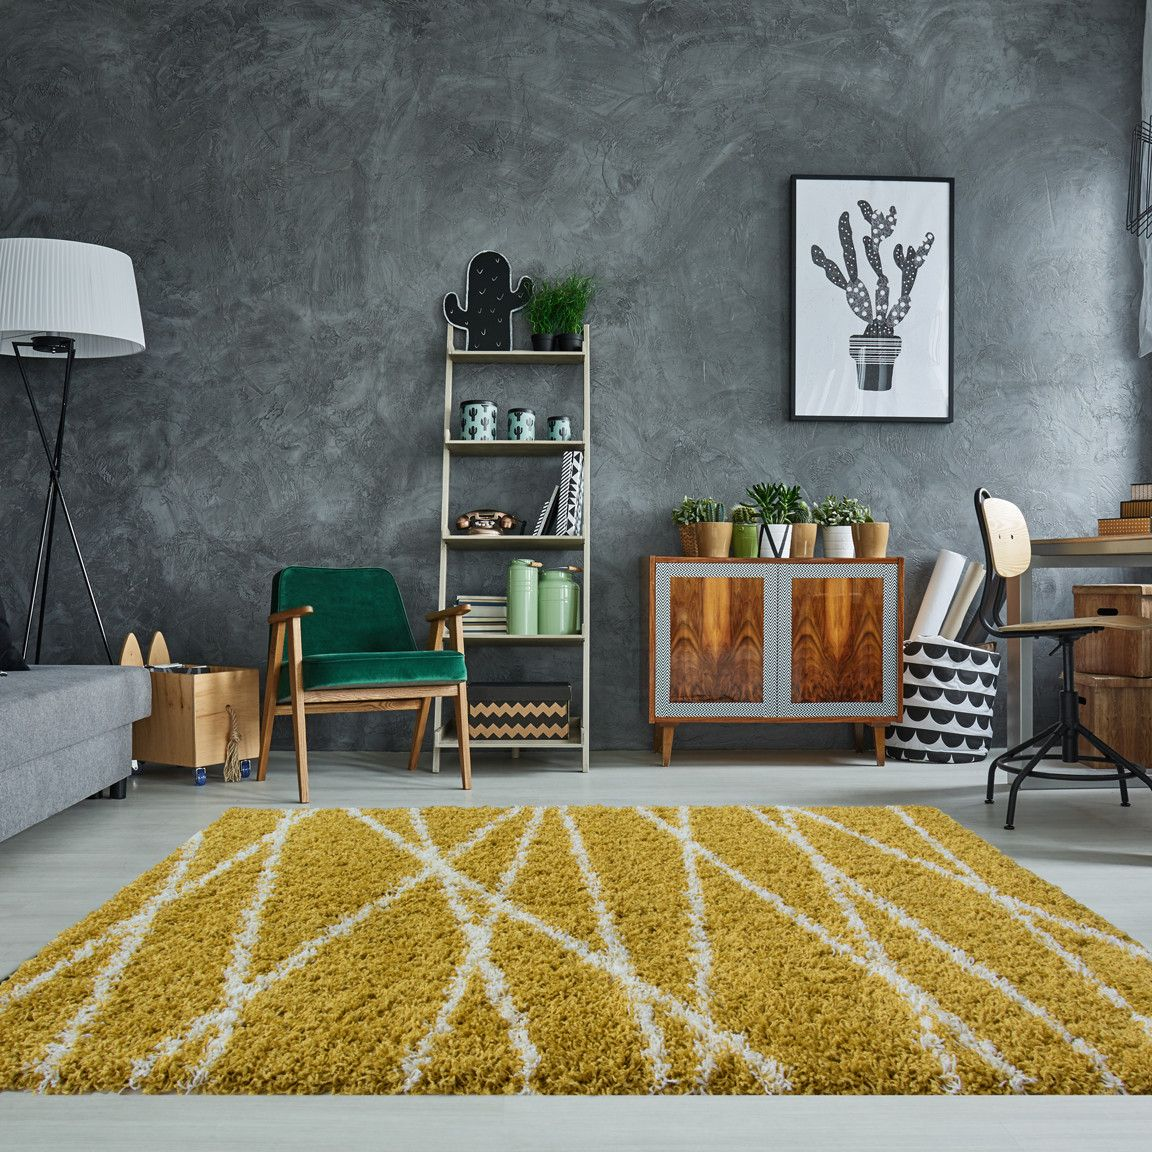 Geometric Ochre Yellow Shaggy Rug